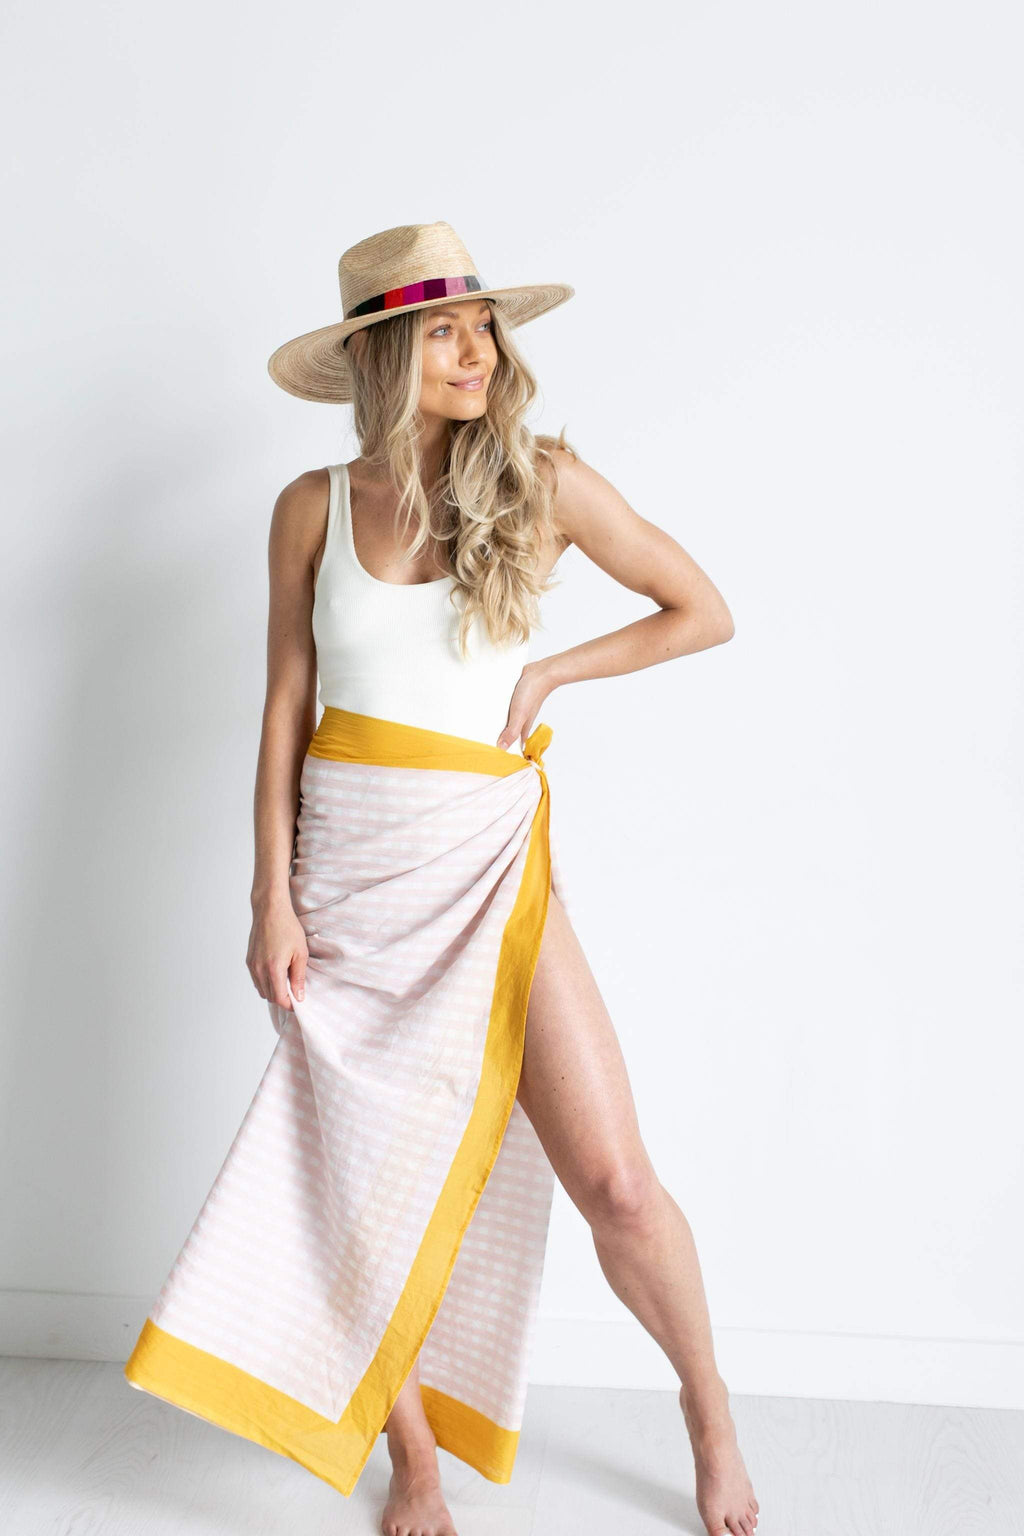 Sunshine Tienda® Honeysuckle Gingham Sarong